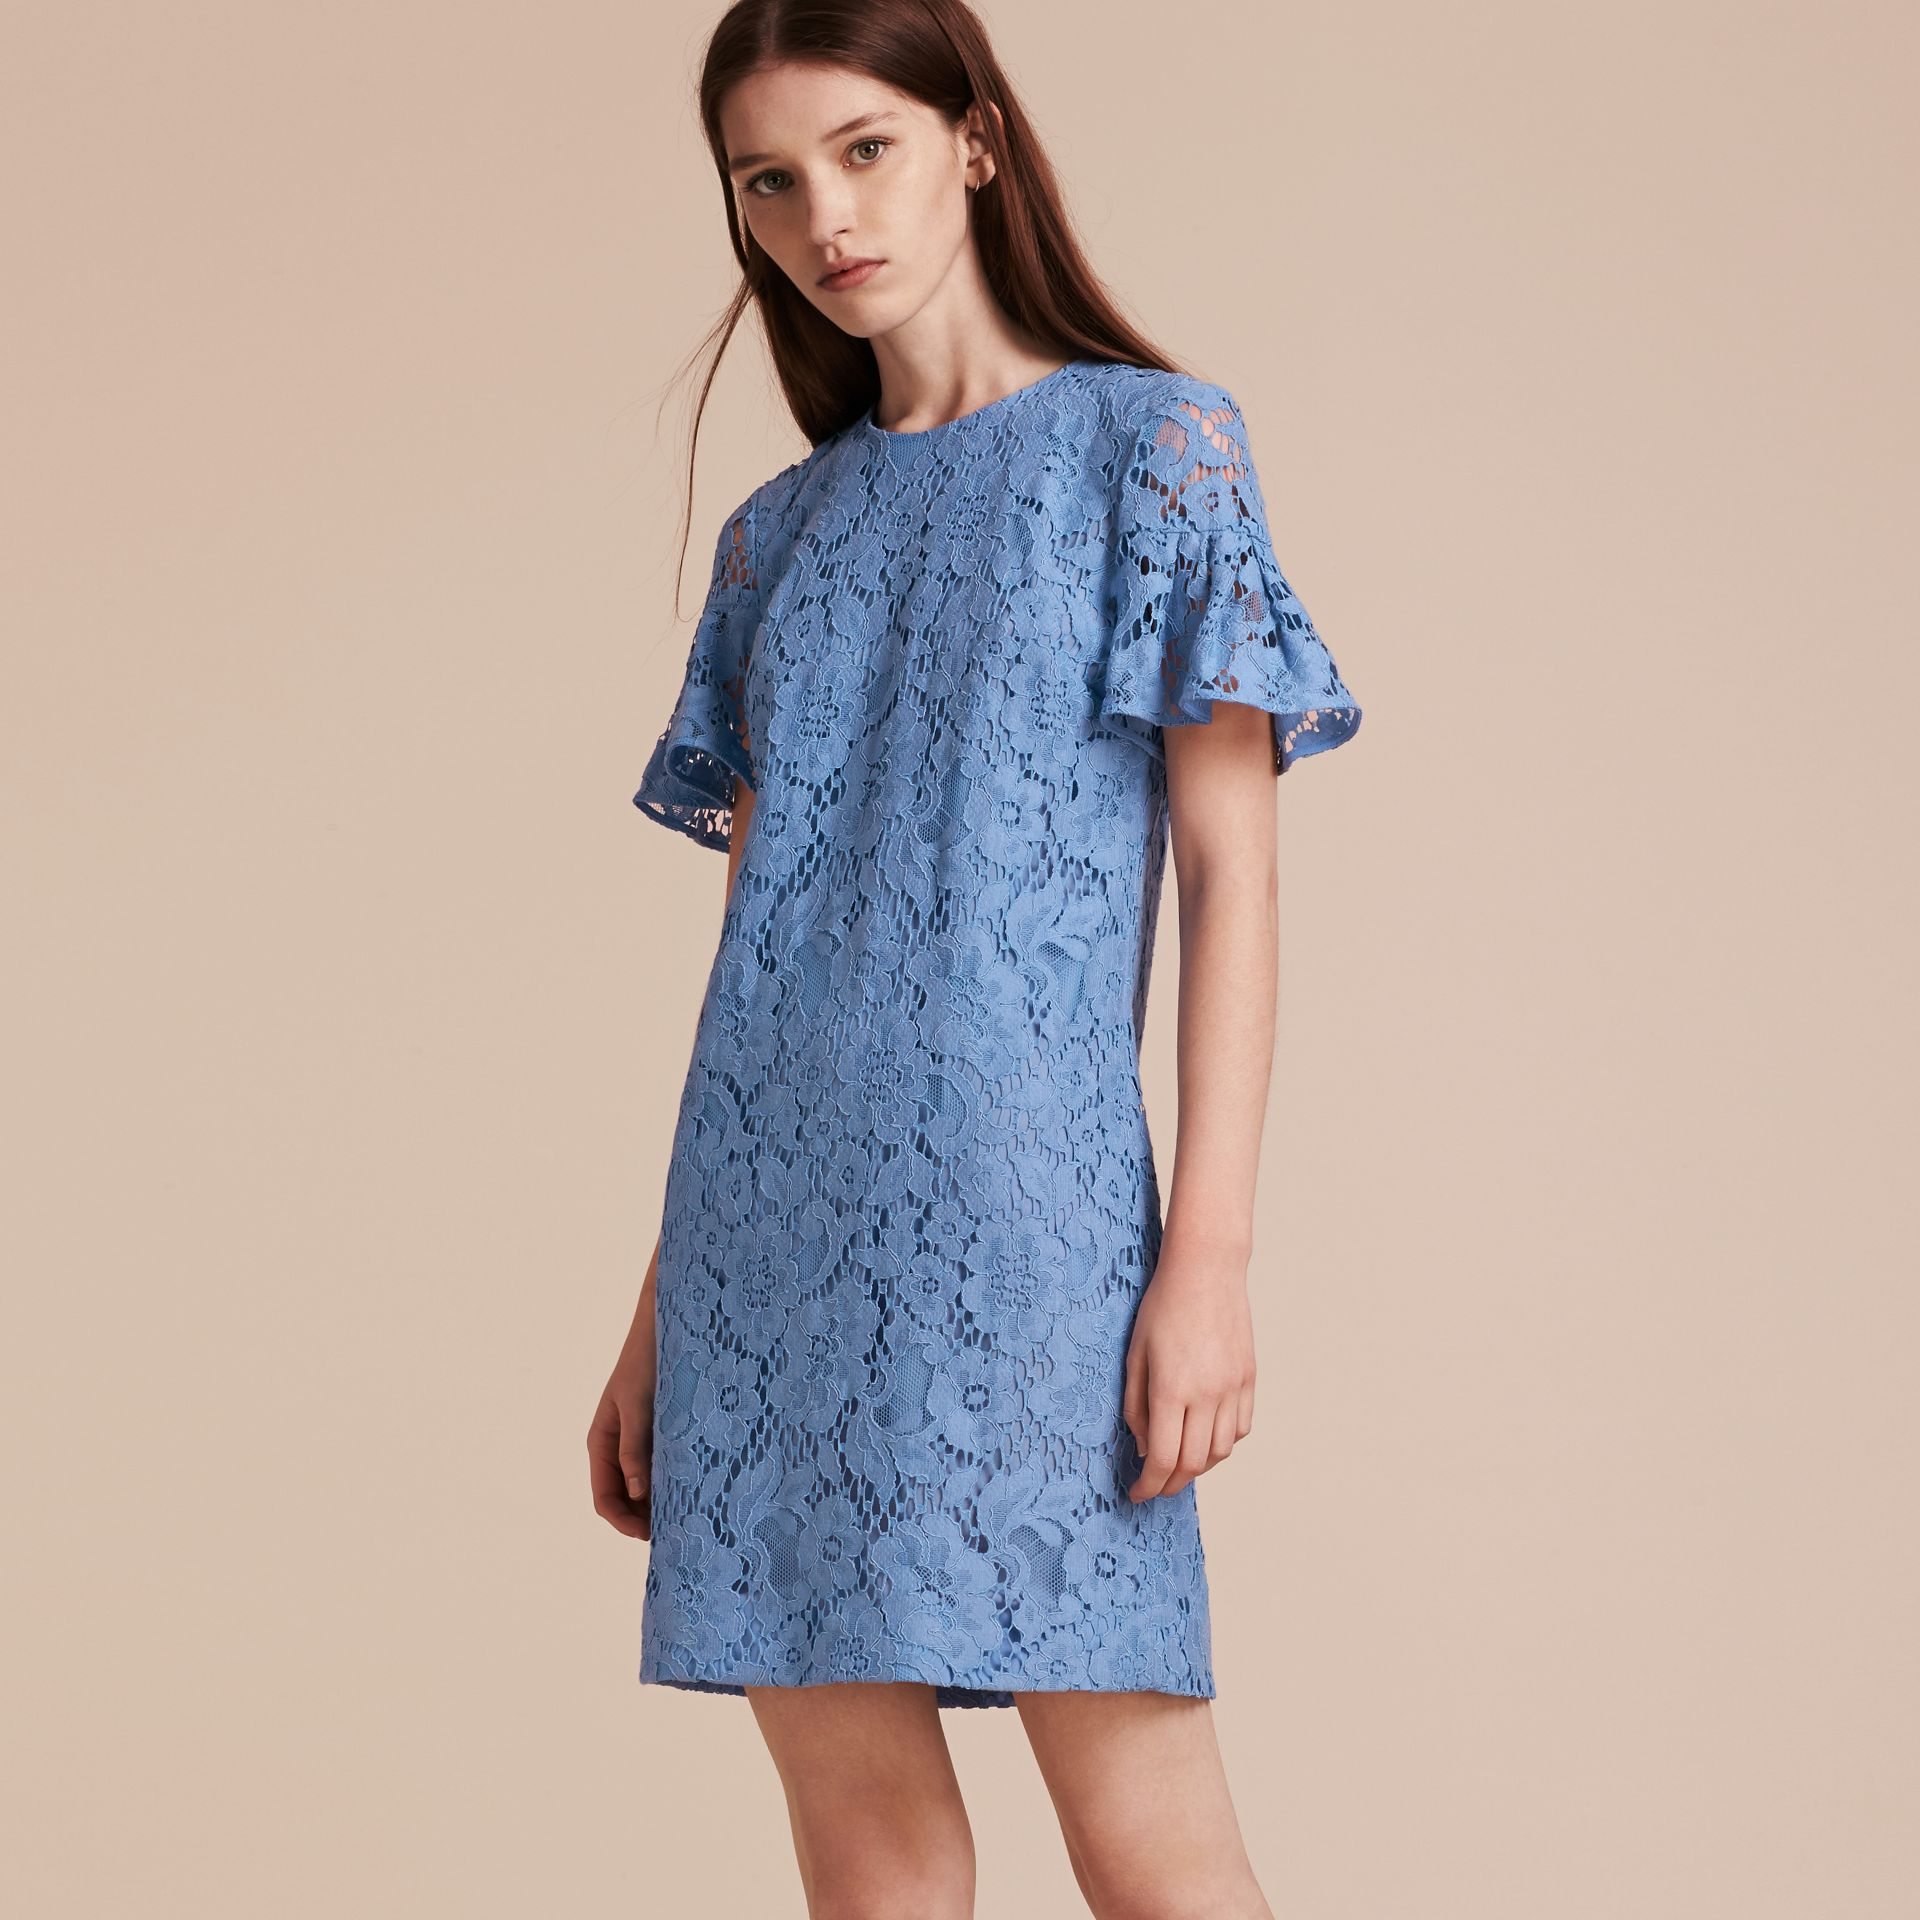 Macramé Lace Short Shift Dress with Ruffle Sleeves - gallery image 6